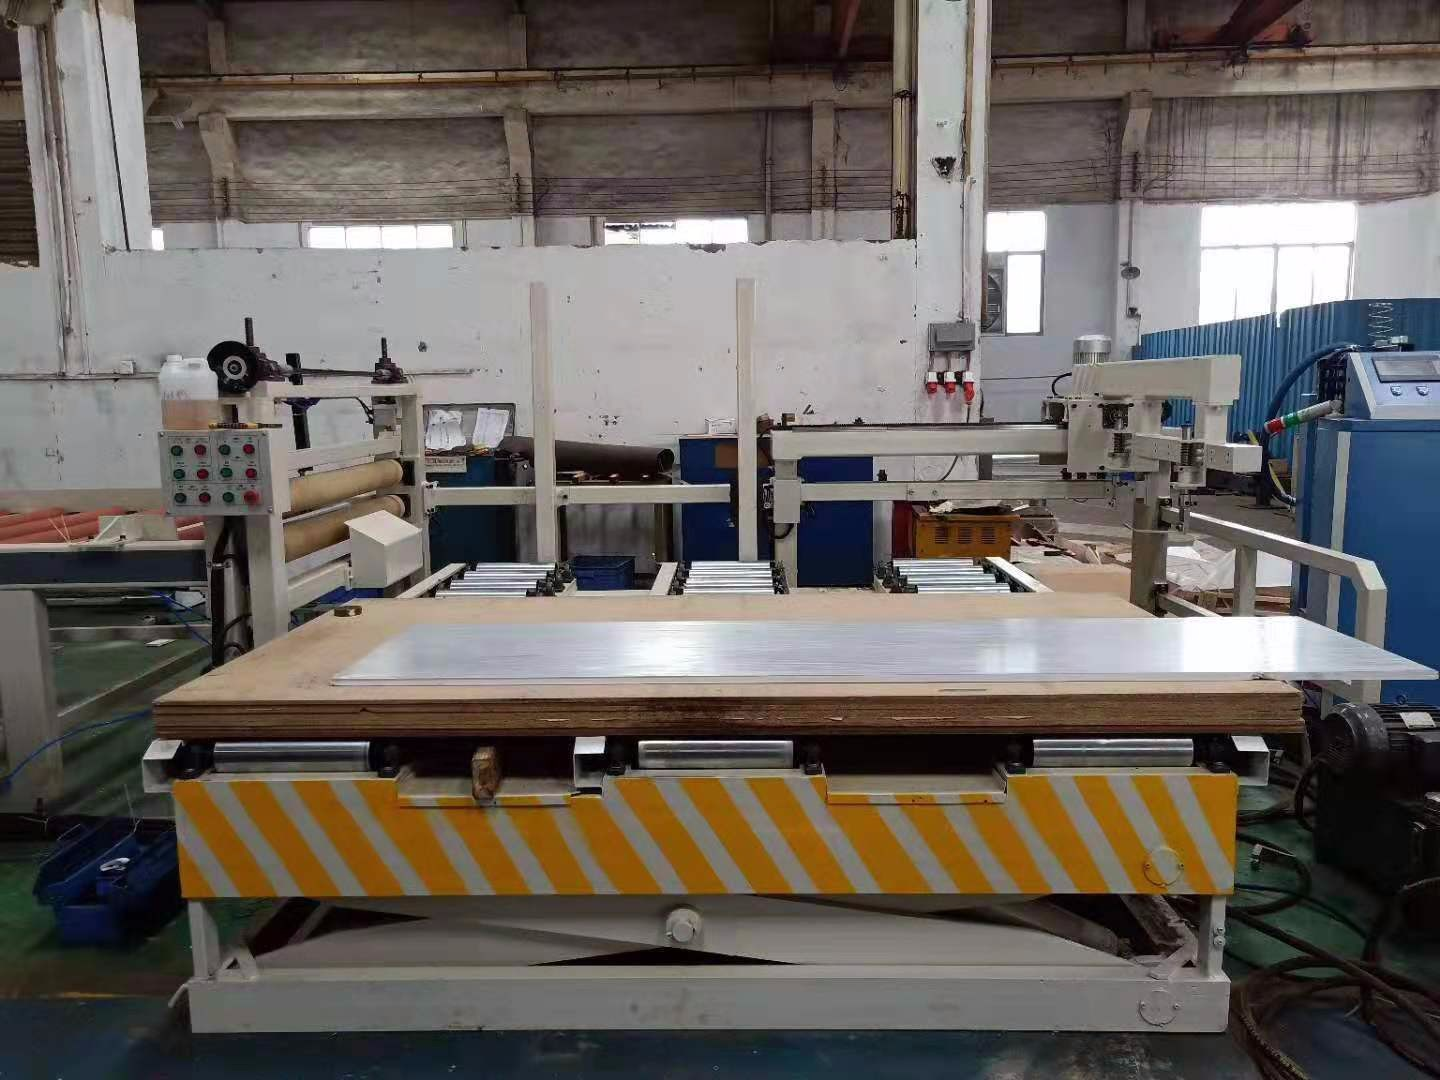 Panel Lift Table / Hydraulic Raising Platform Manufacturers, Panel Lift Table / Hydraulic Raising Platform Factory, Supply Panel Lift Table / Hydraulic Raising Platform